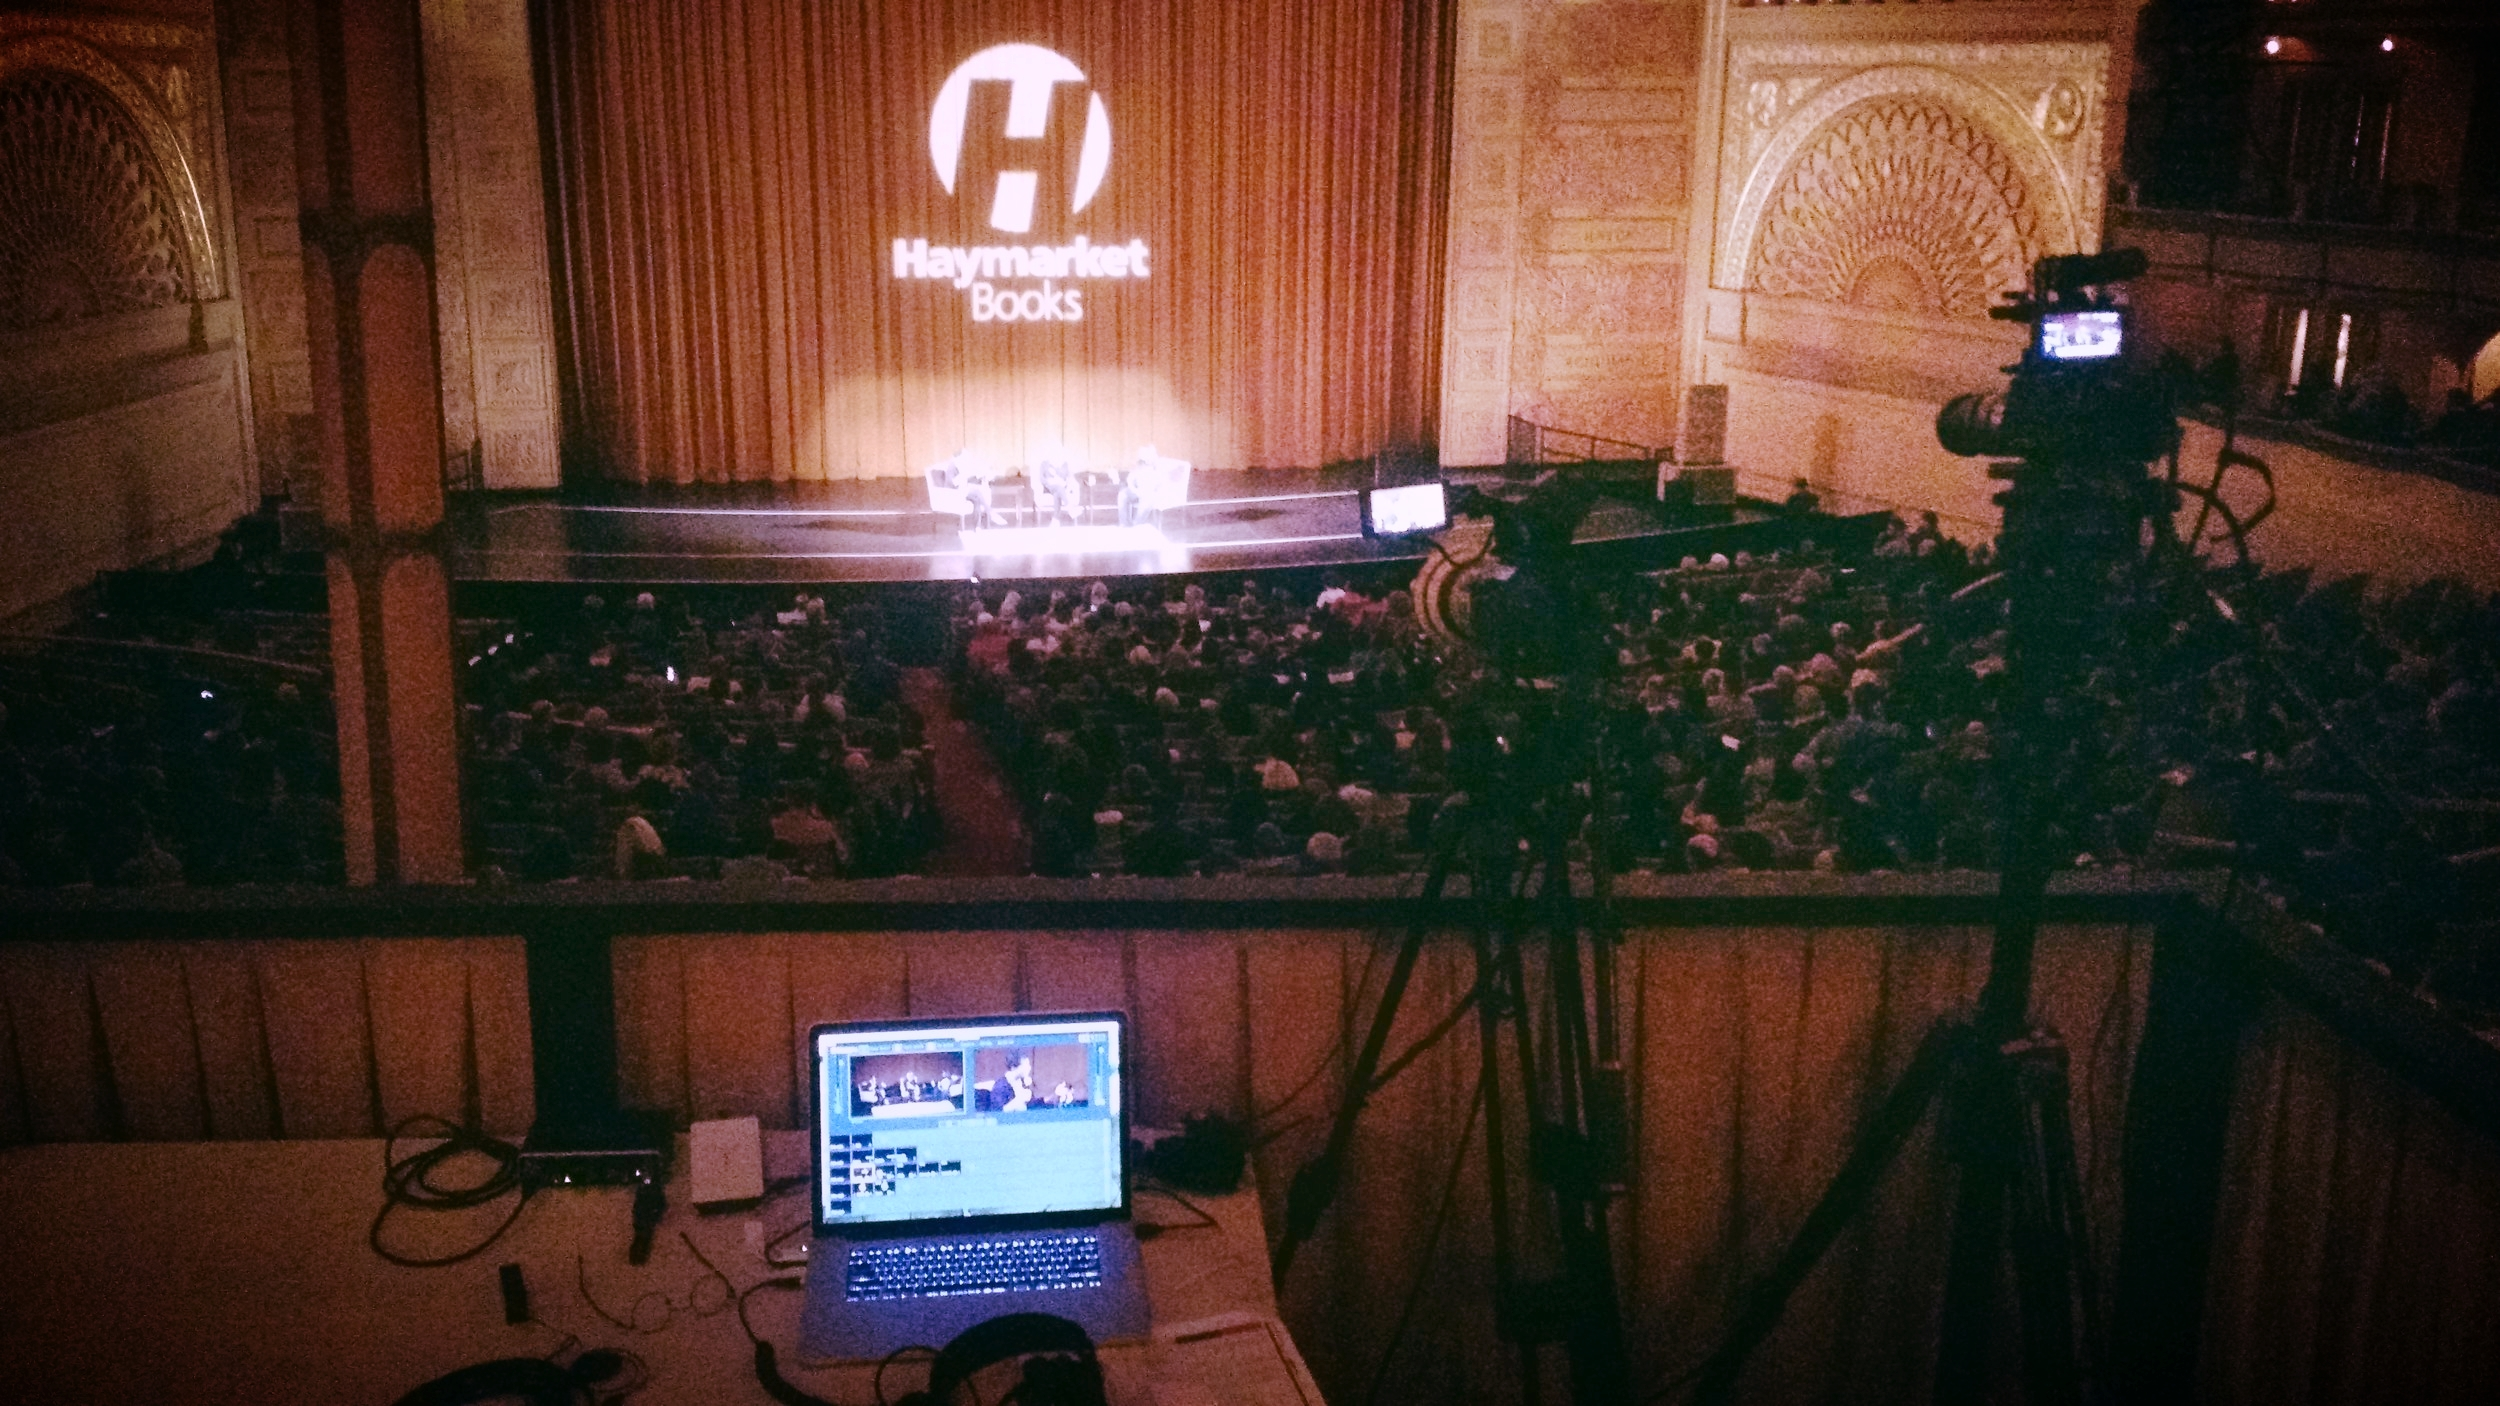 Carrying a 3500-person event (Michele Alexander and Naomi Klein) from the Auditorium Theater to the world via Facebook Live, May 2017